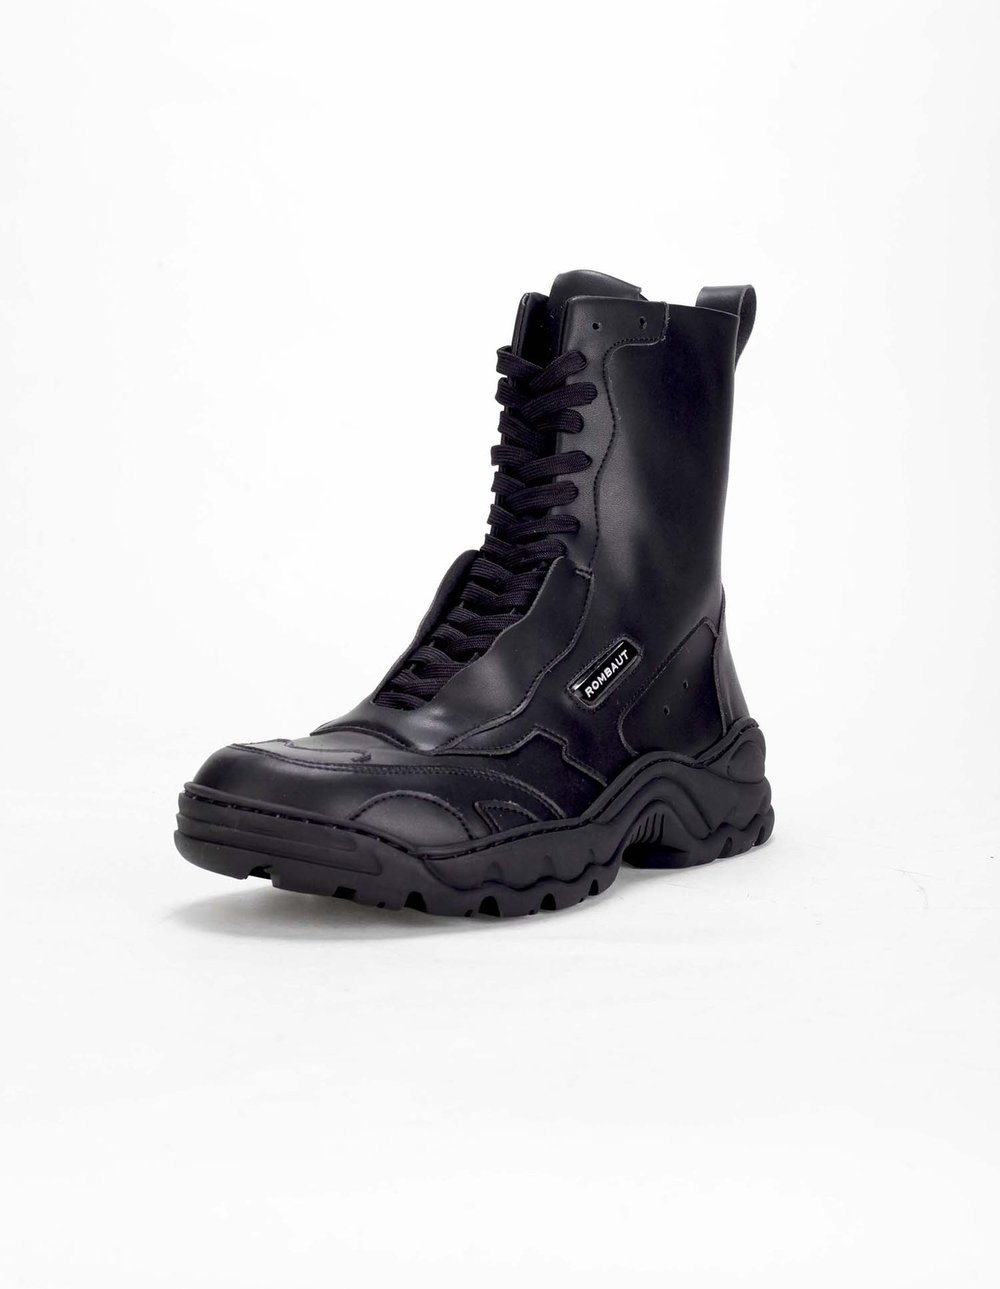 unmistakable - The Boccaccio Sneaker boots with rubber sole. 100% pleather upper and breathable lining, 100% vegan.Rombaut. $505